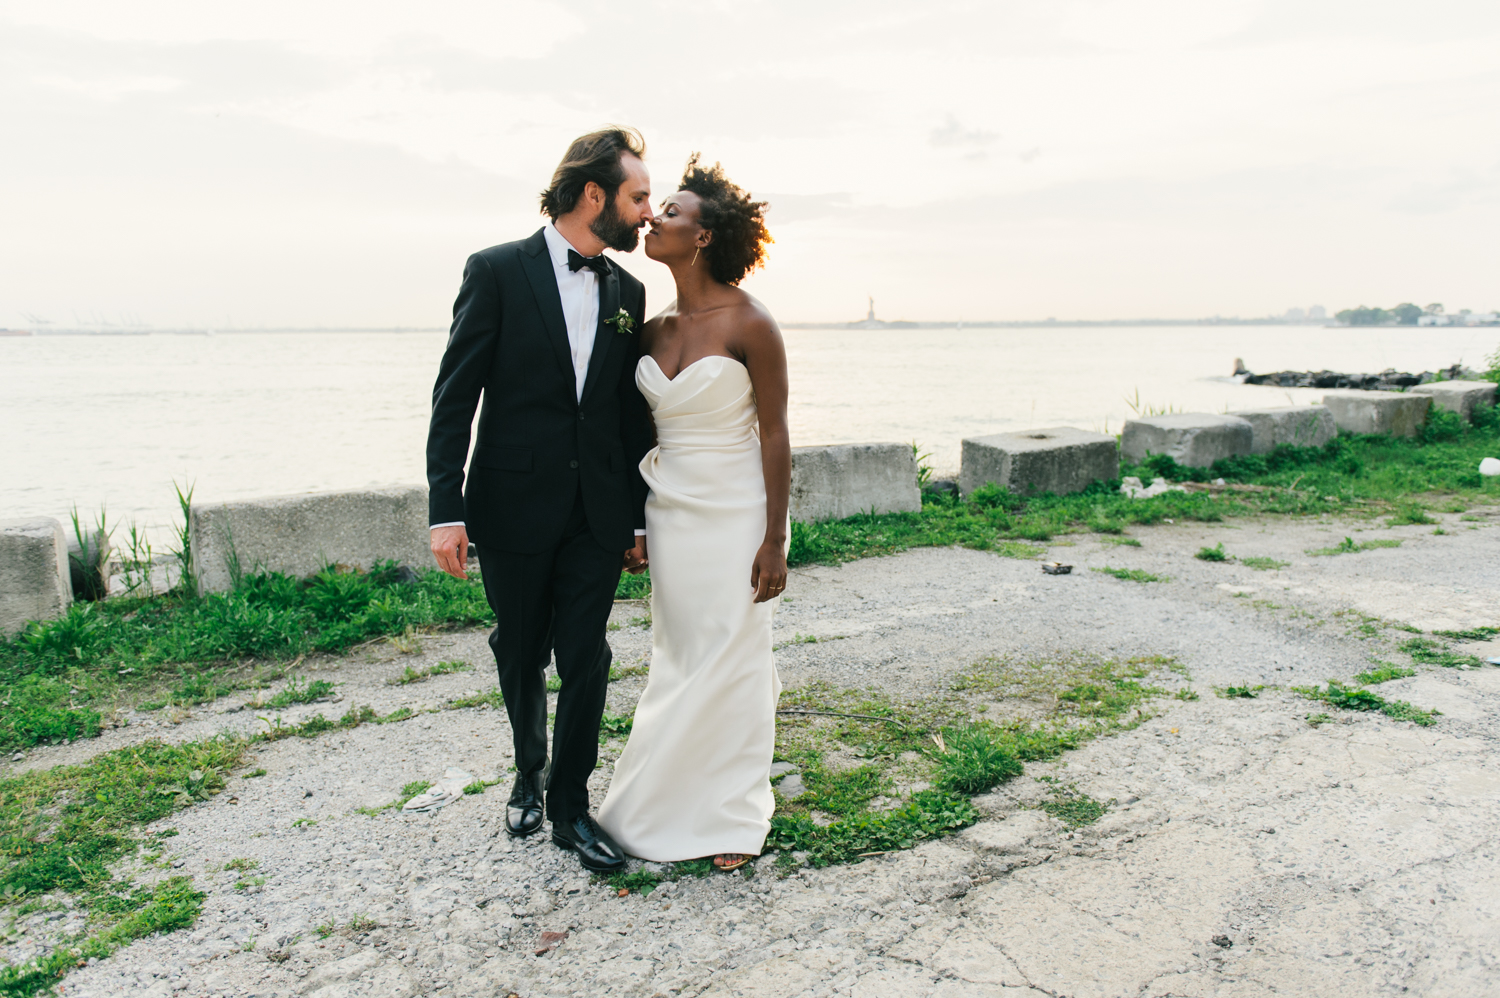 LibertyWarehouse.Brooklyn.RedHook.Wedding30.jpg